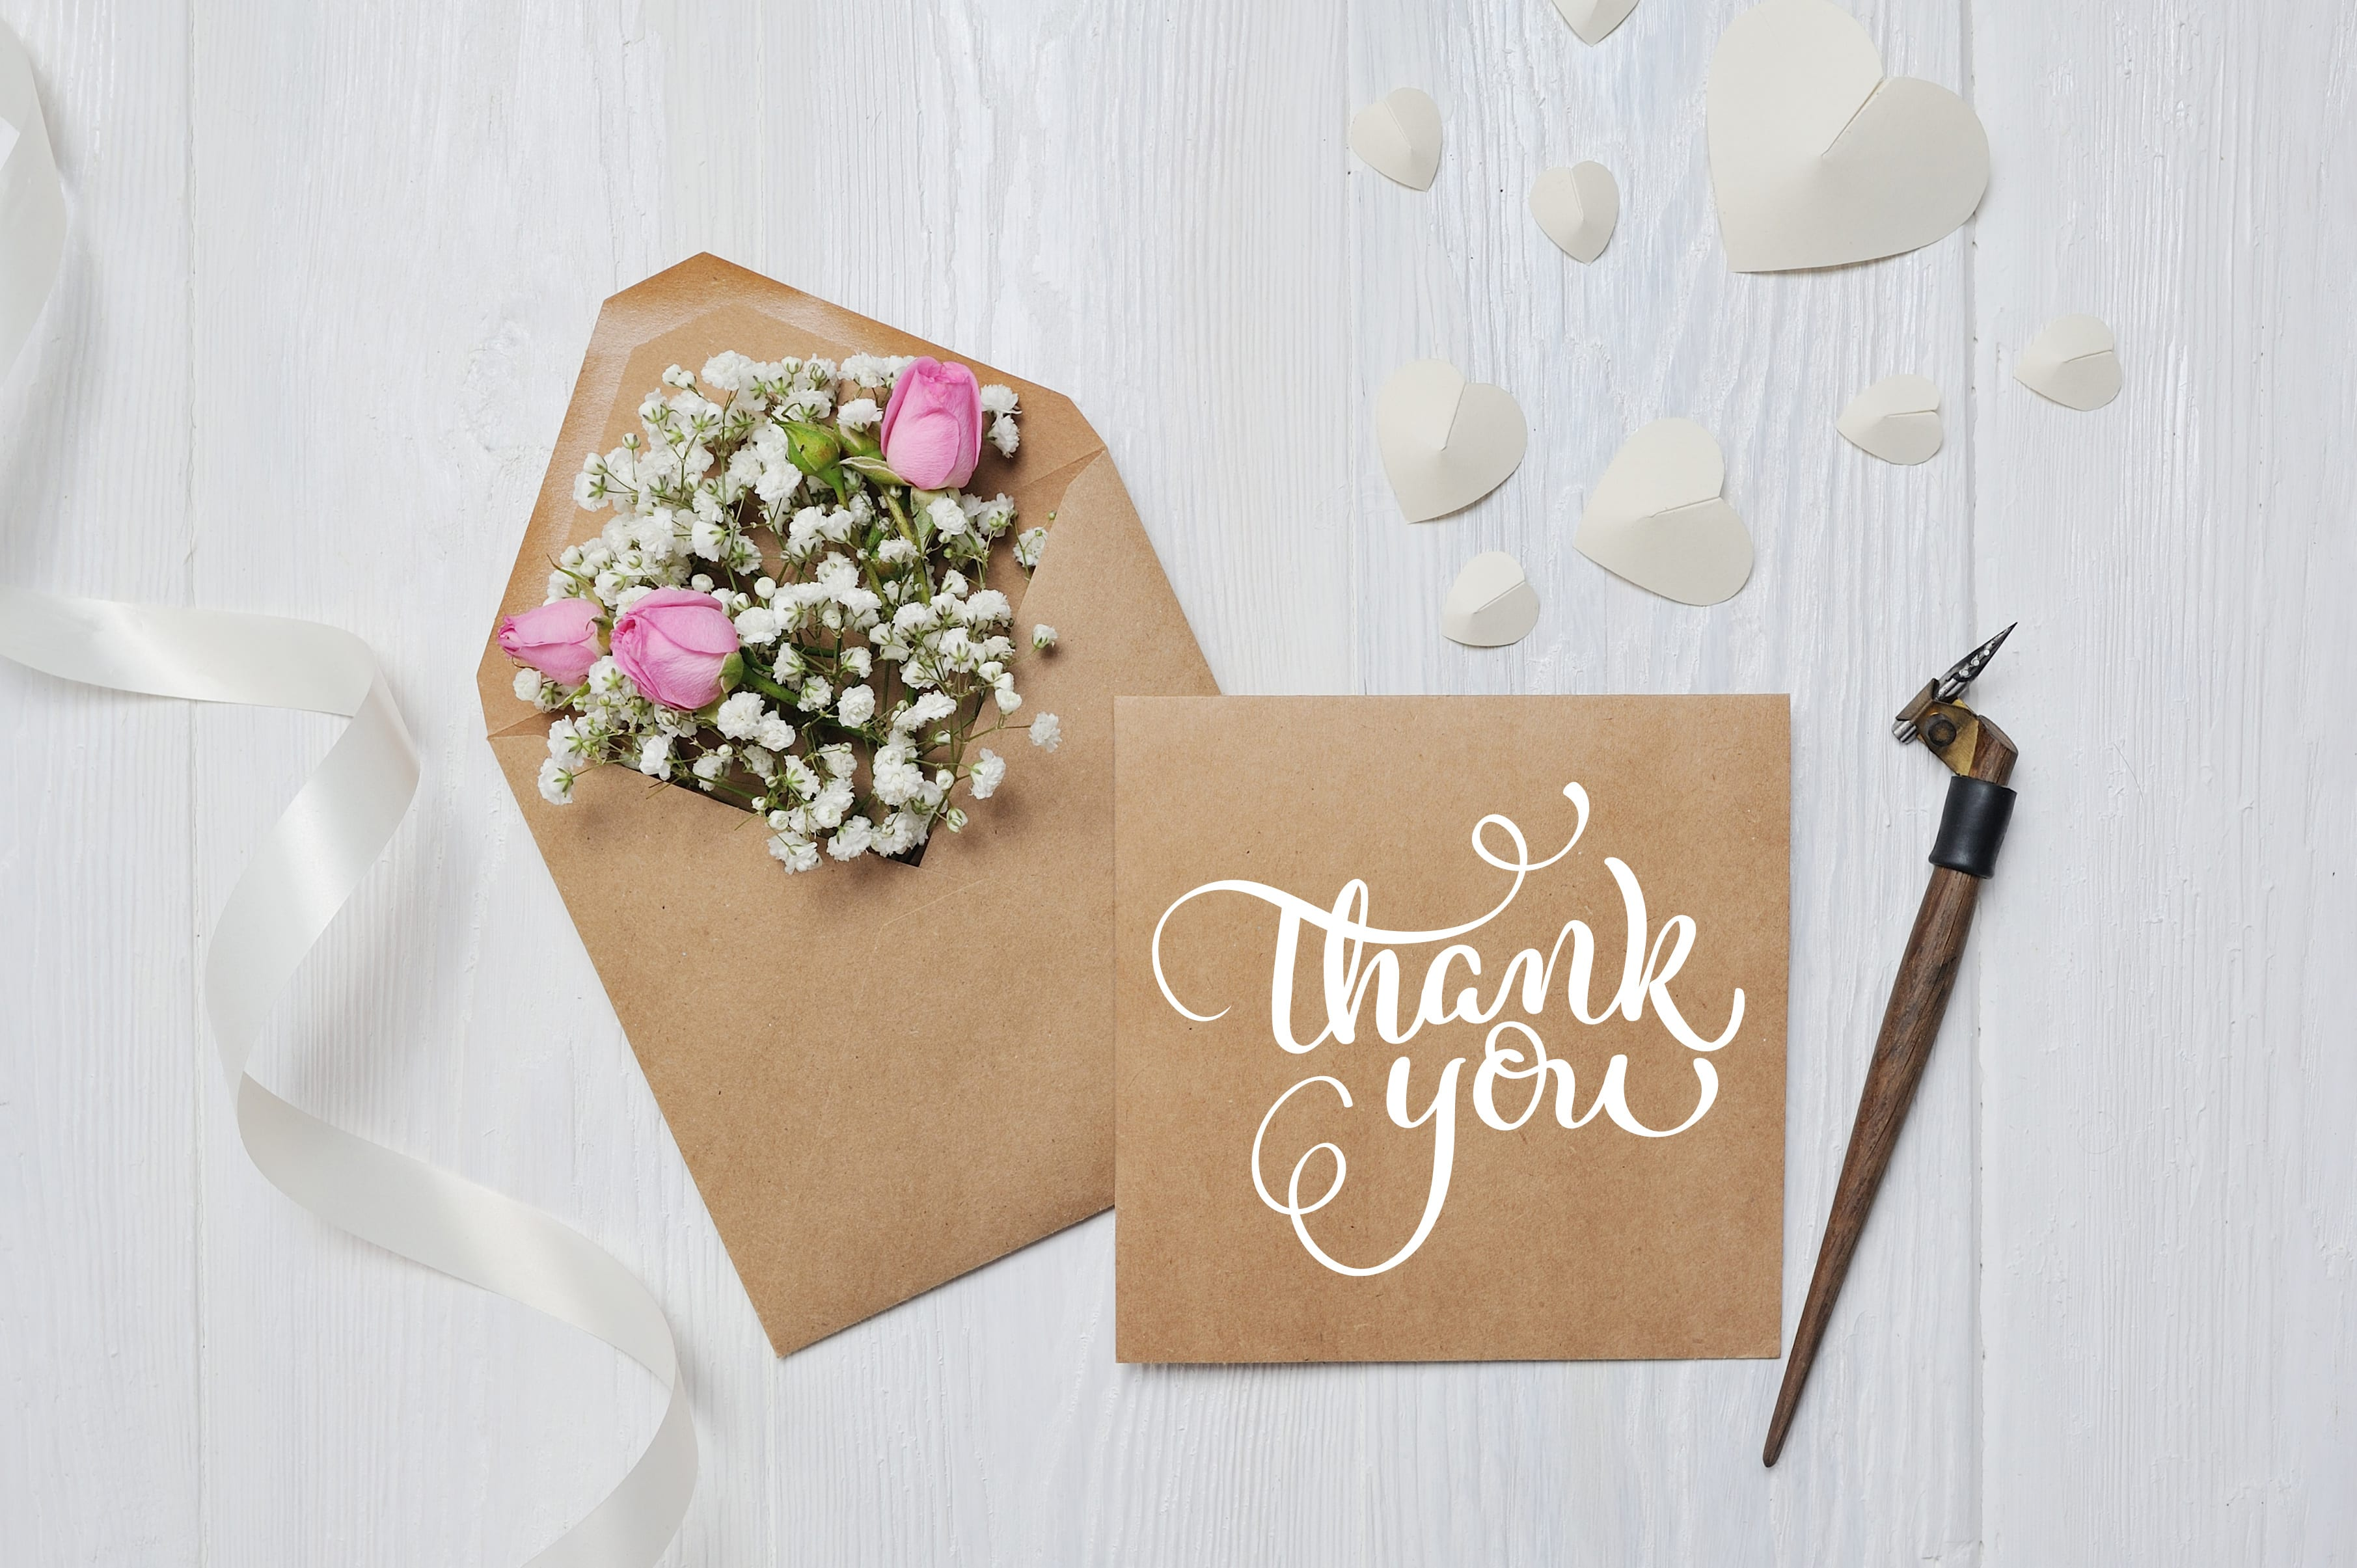 7 Tips For Writing Wedding Thank You Cards The Orchard